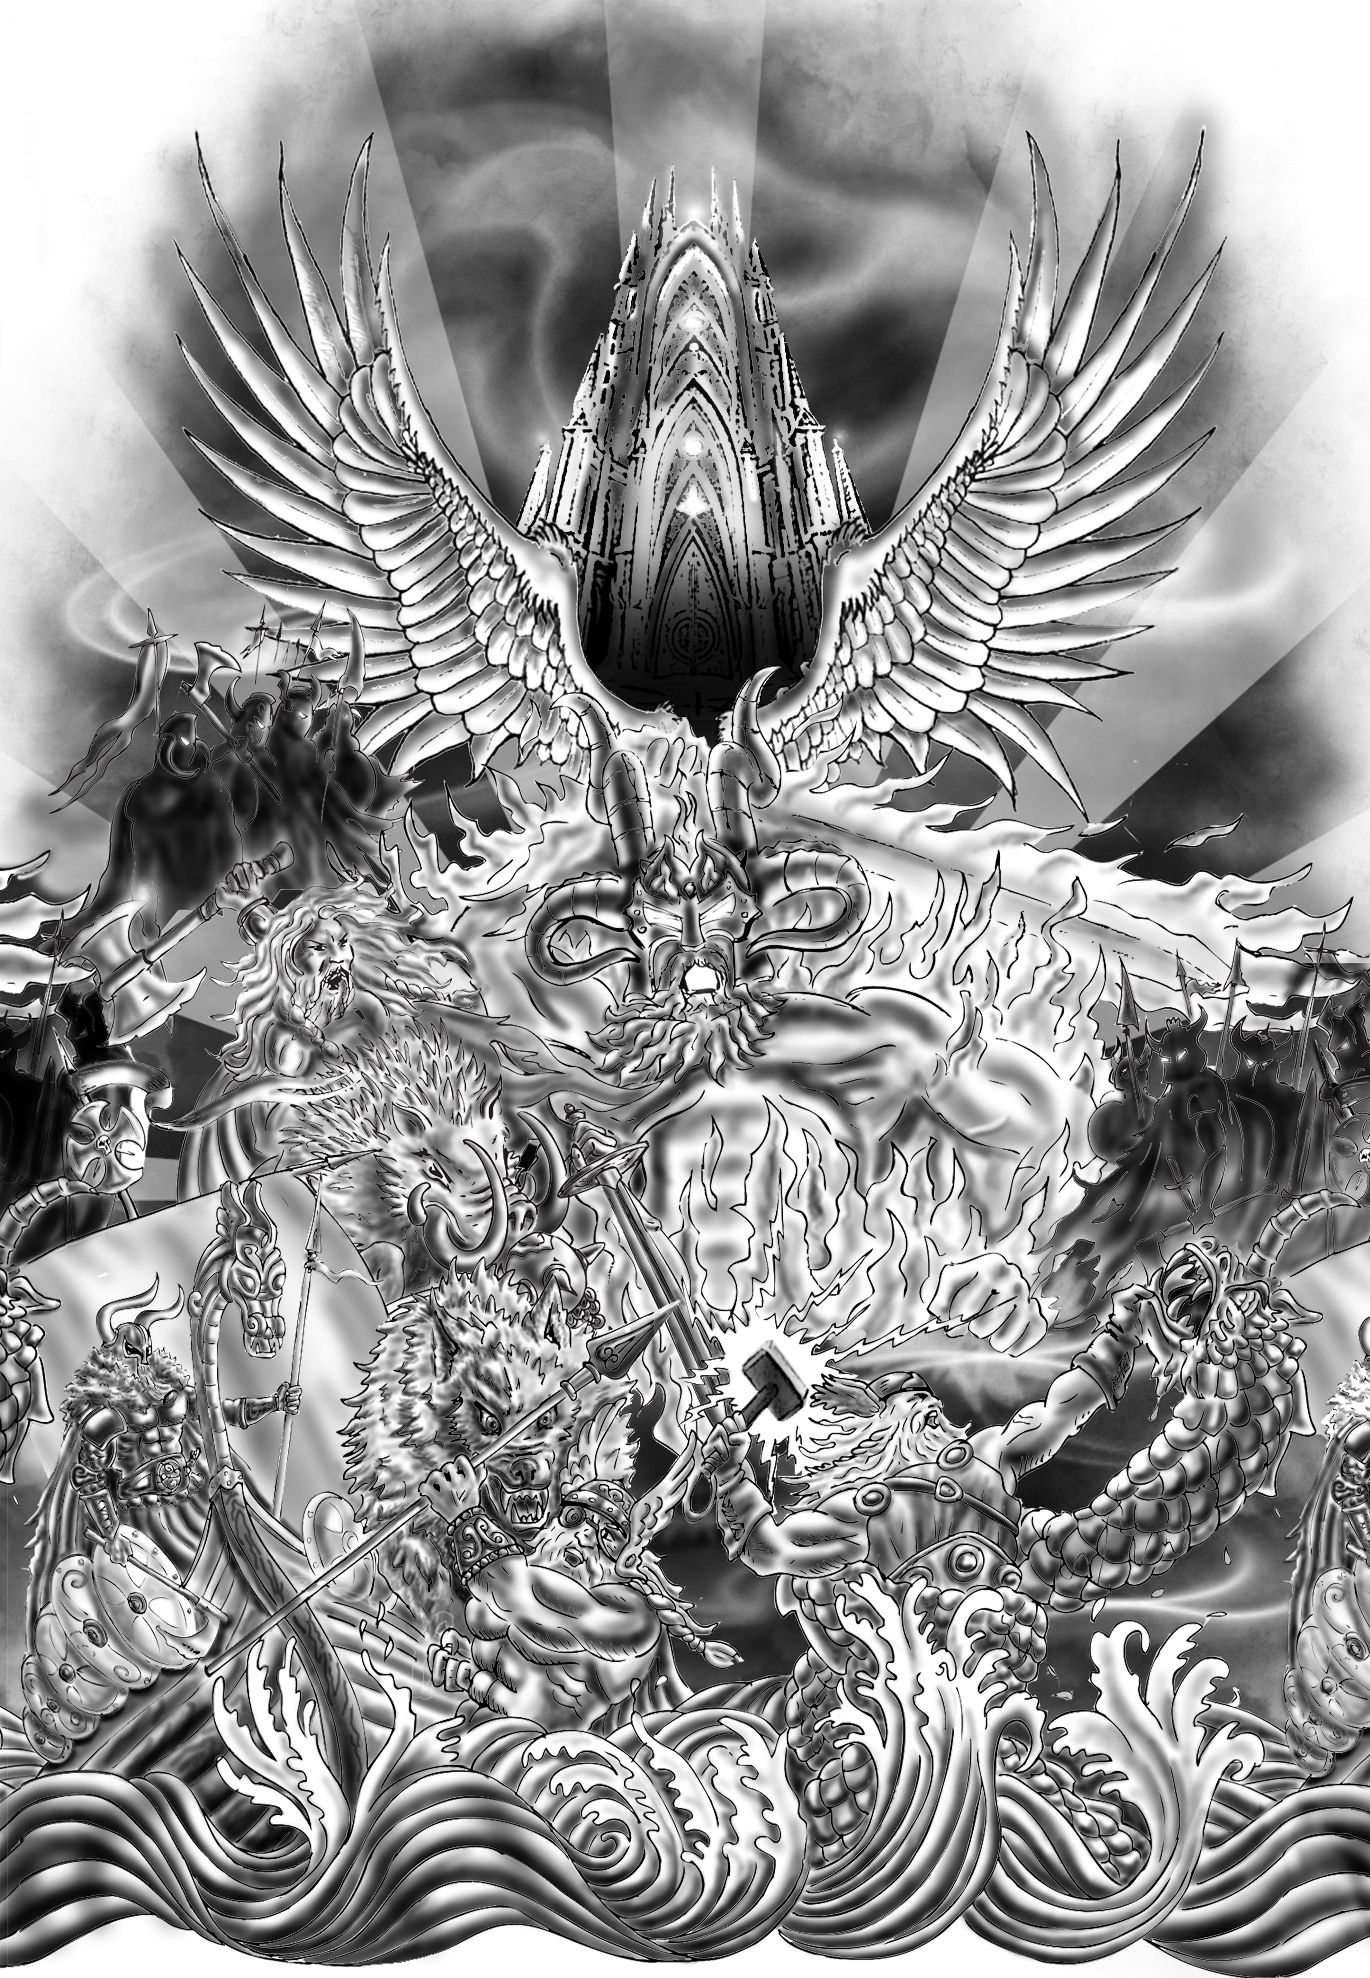 Valkyrie tattoo designs are for guys who are on a search for … valkyrie symbol tattoo. Ragnarök - custom Tattoo Design - By Lucius in Fabula